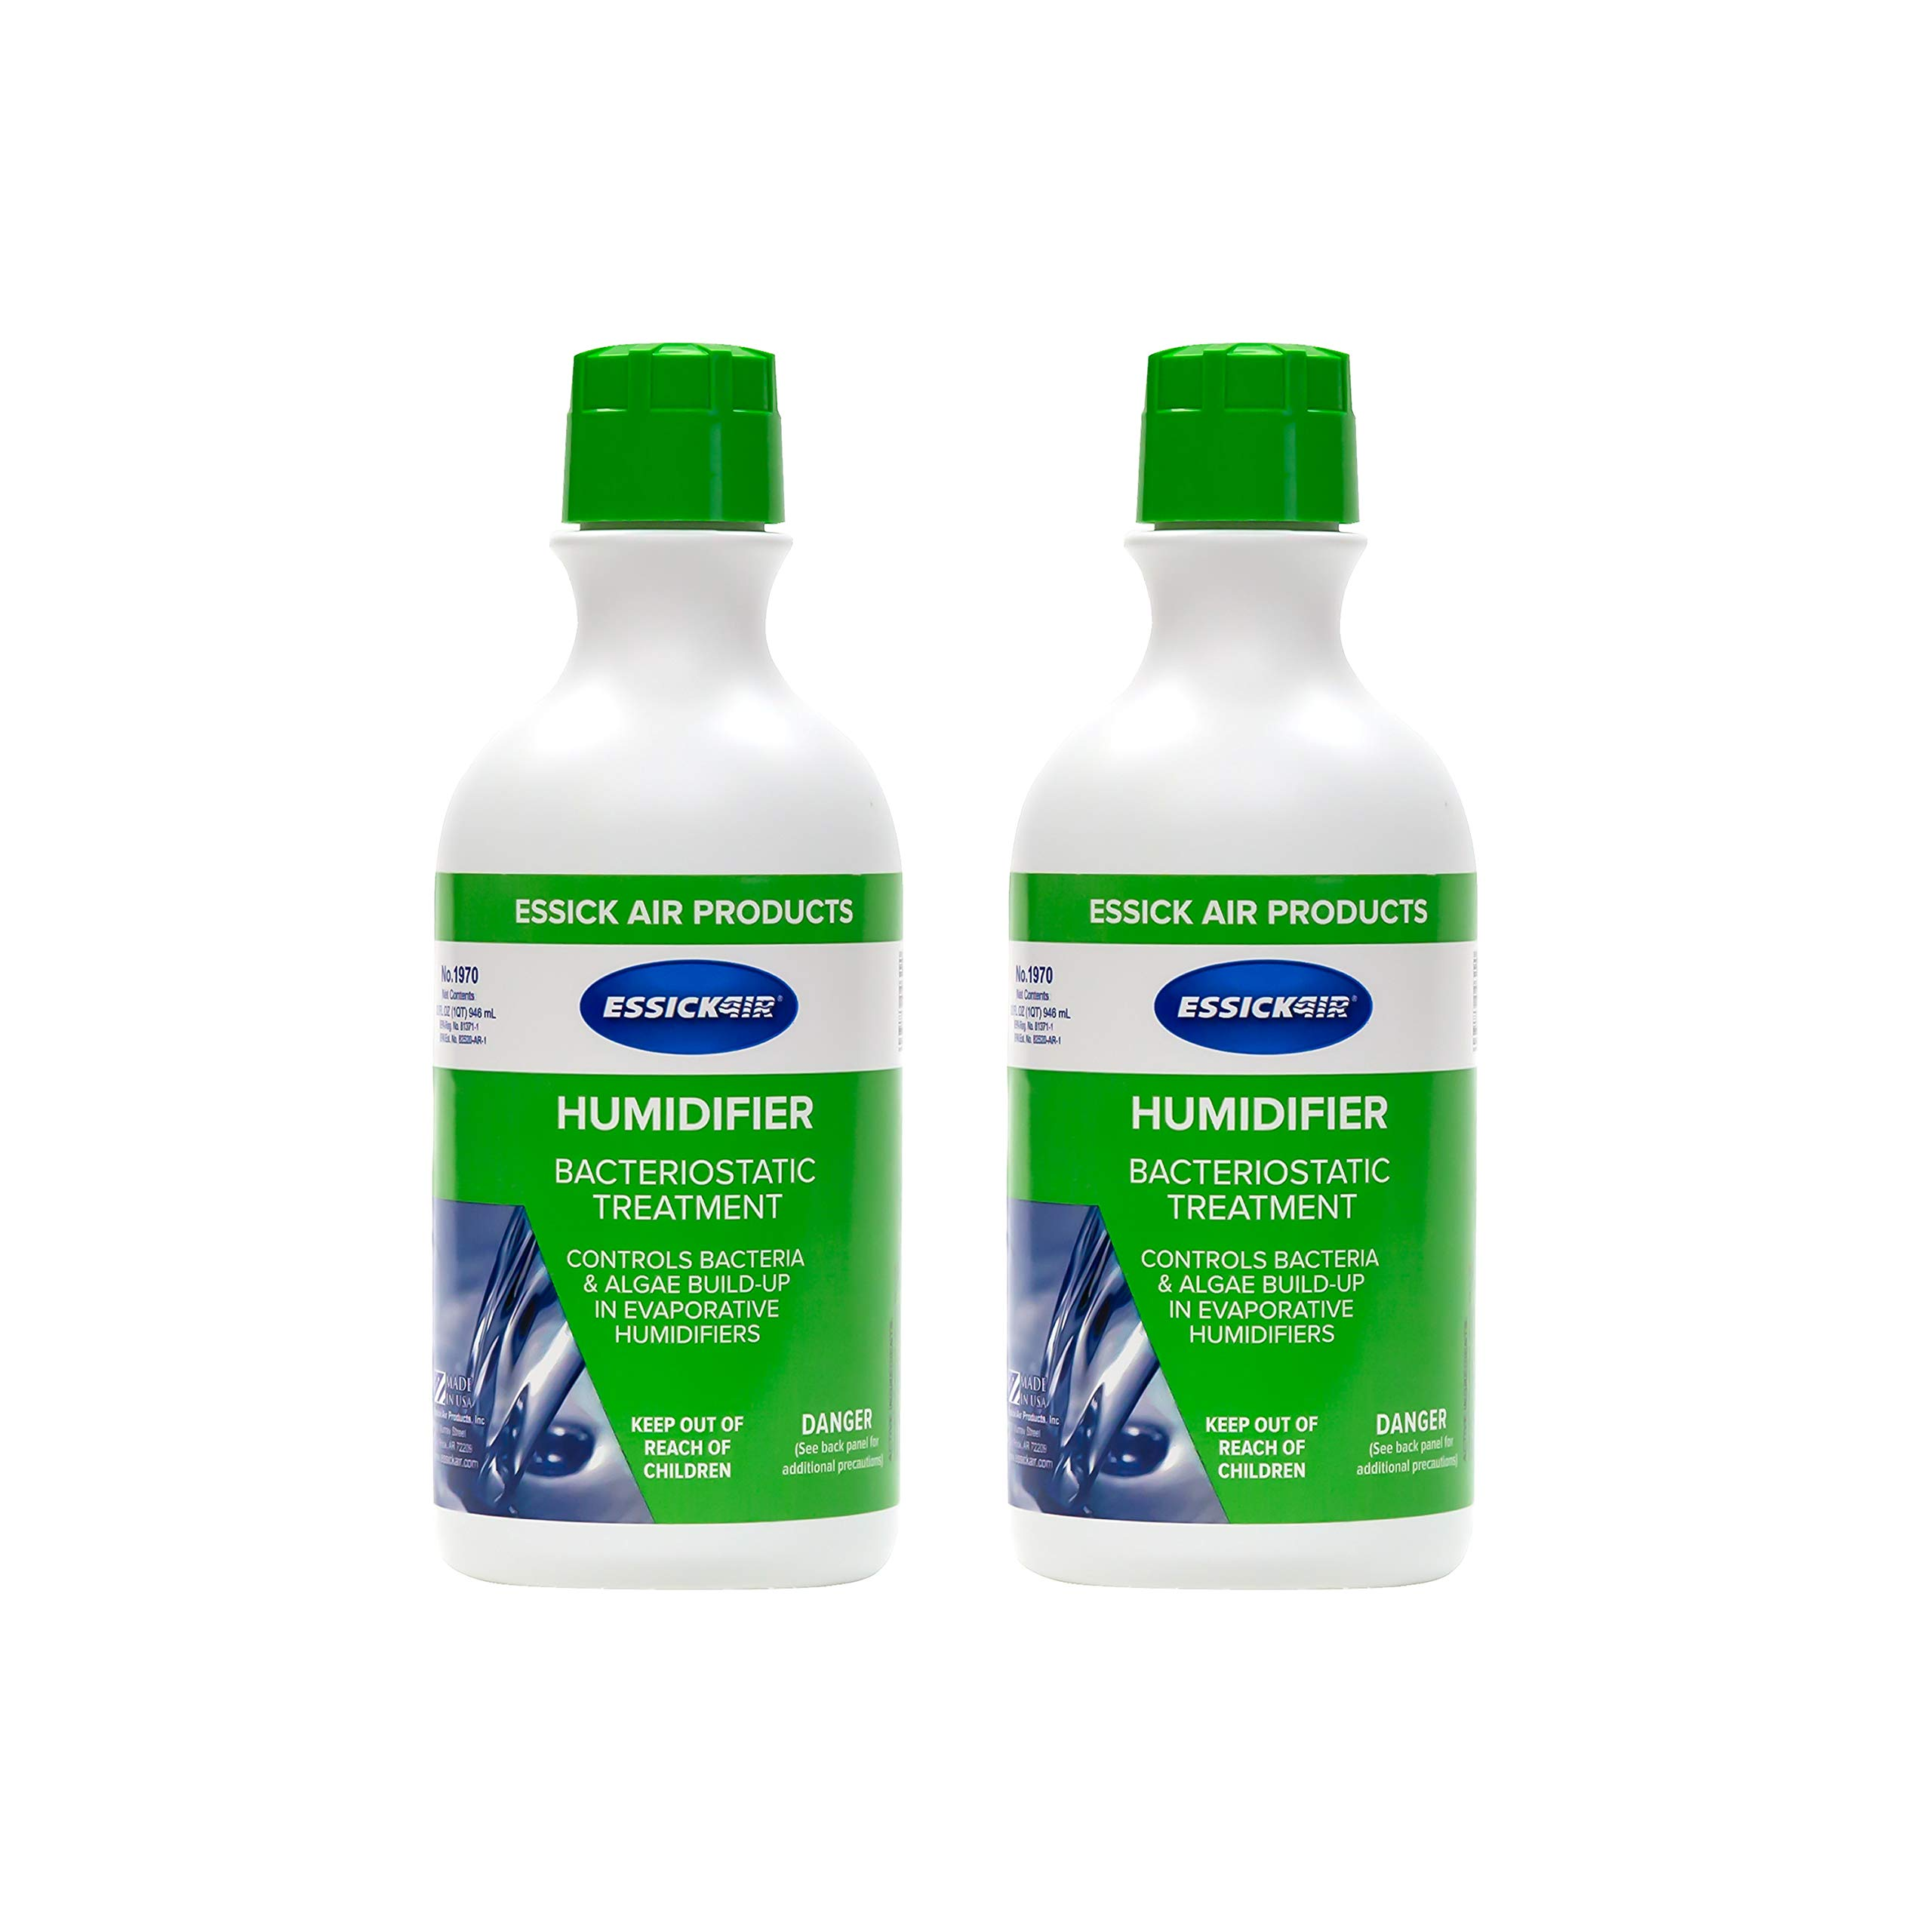 essick air humidifier bacteriostatic treatment instructions